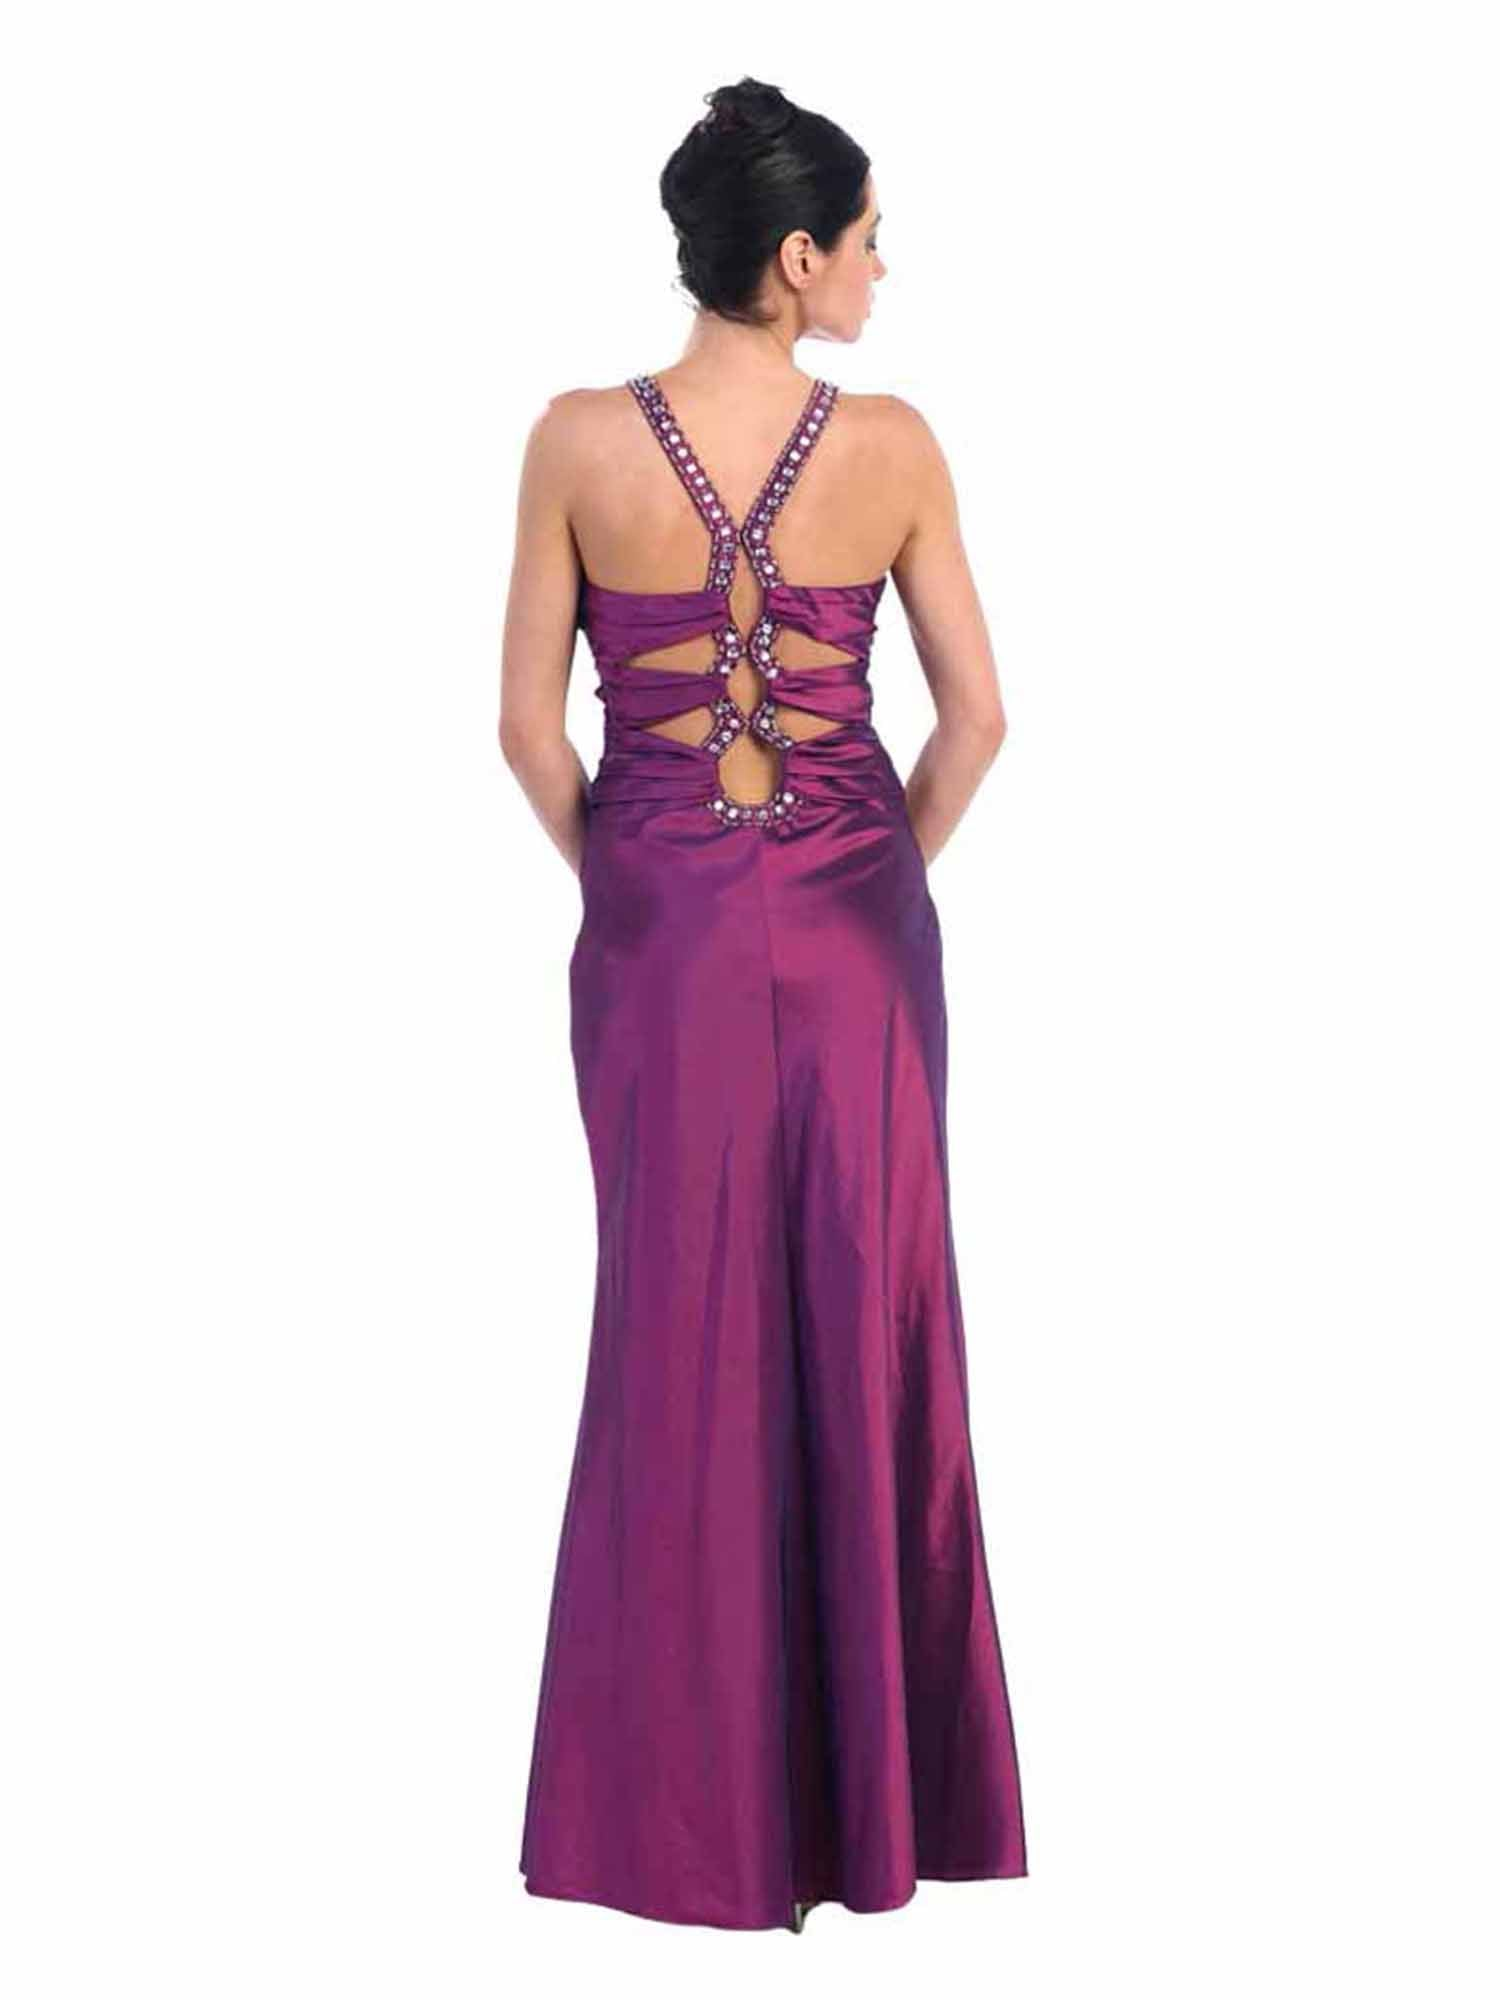 Purple Satin Evening Gown With Rhinestone Top Design – Luxury Divas